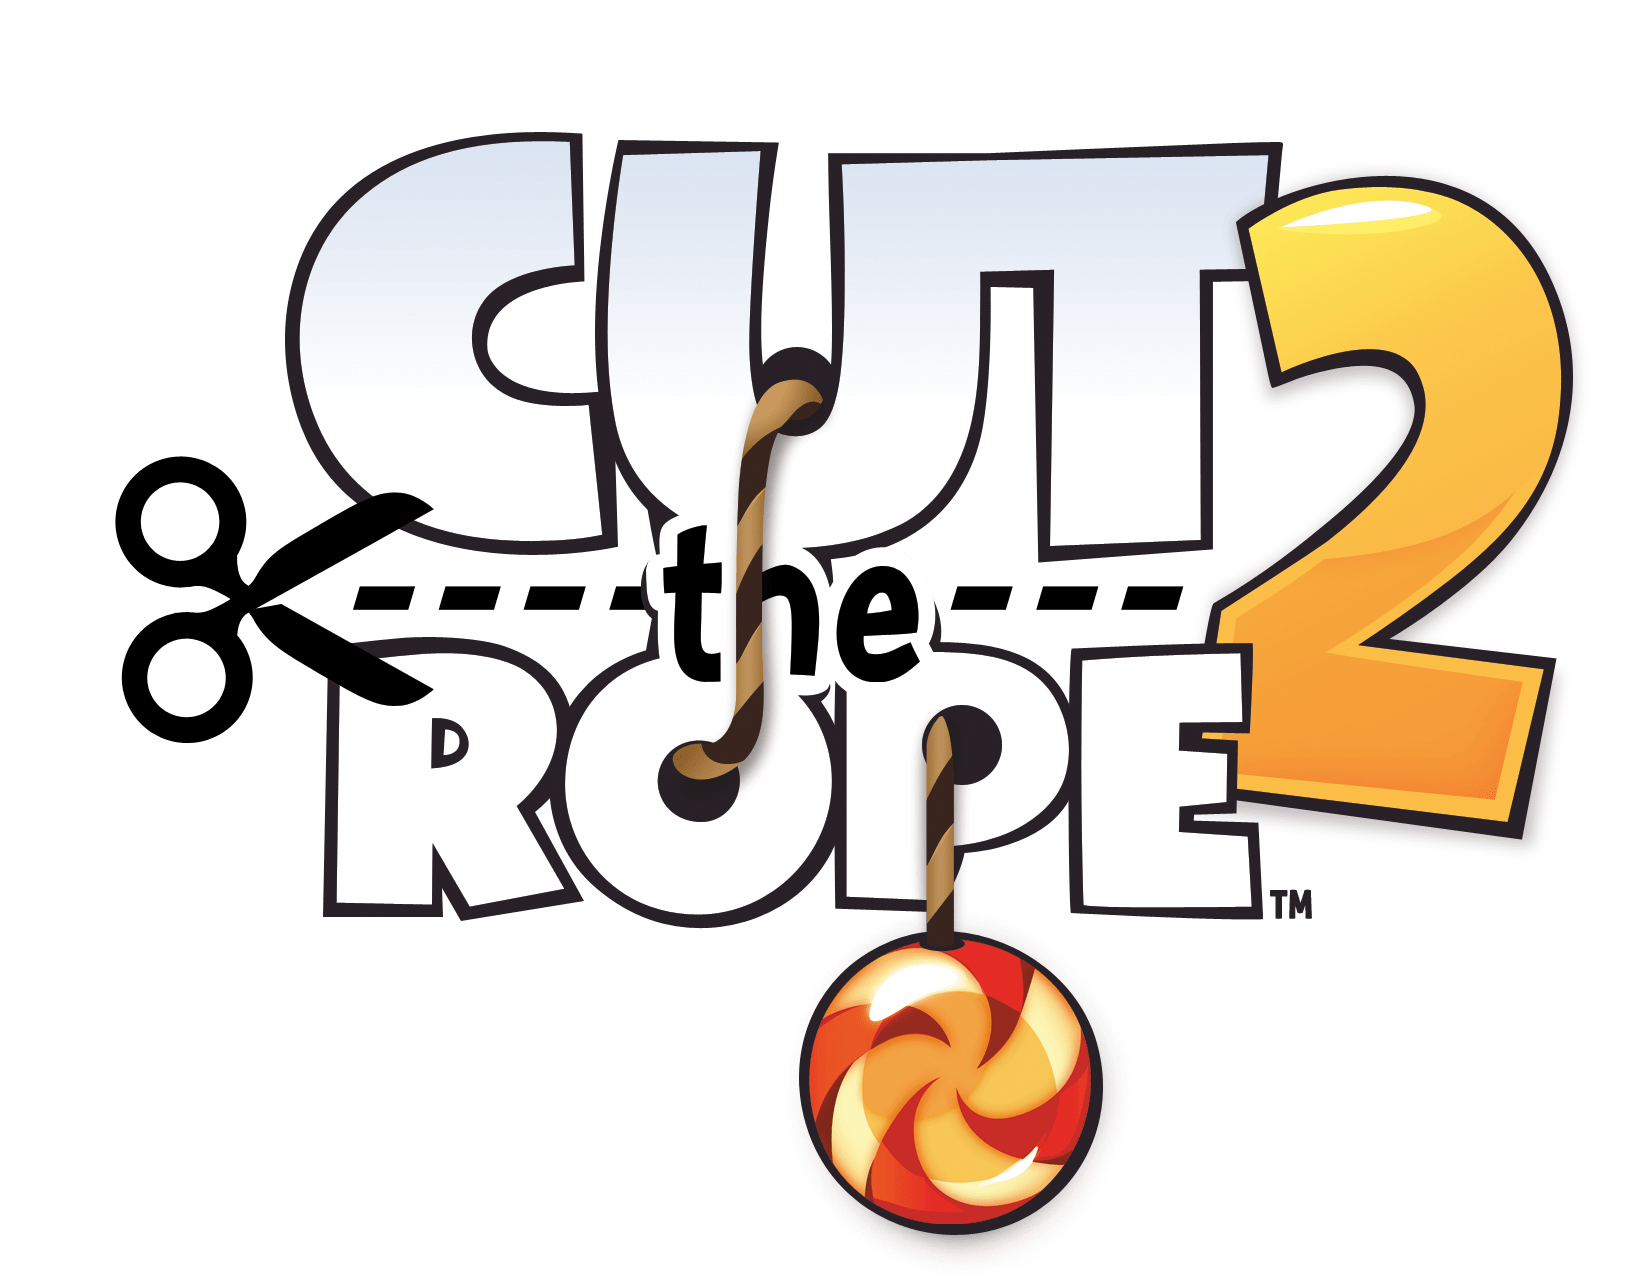 Cut the Rope 2 Logo transparent PNG.